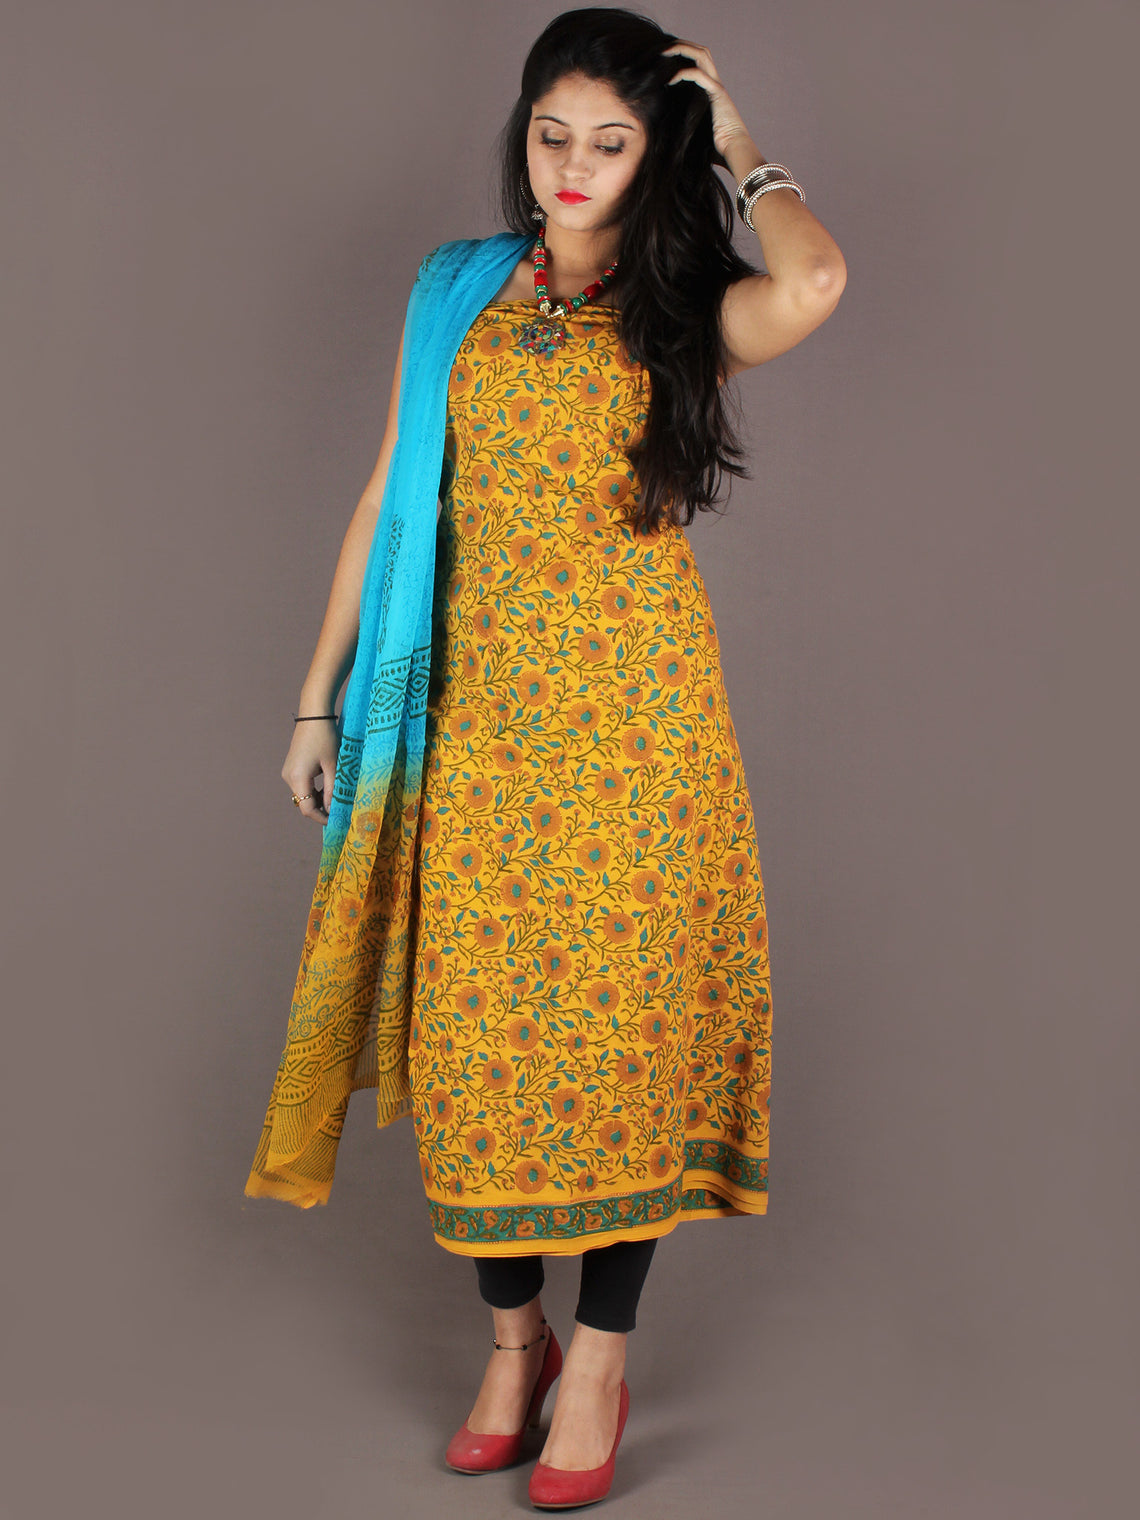 Yellow Sky Blue Hand Block Printed Cotton Suit-Salwar Fabric With Chiffon Dupatta - S1628138